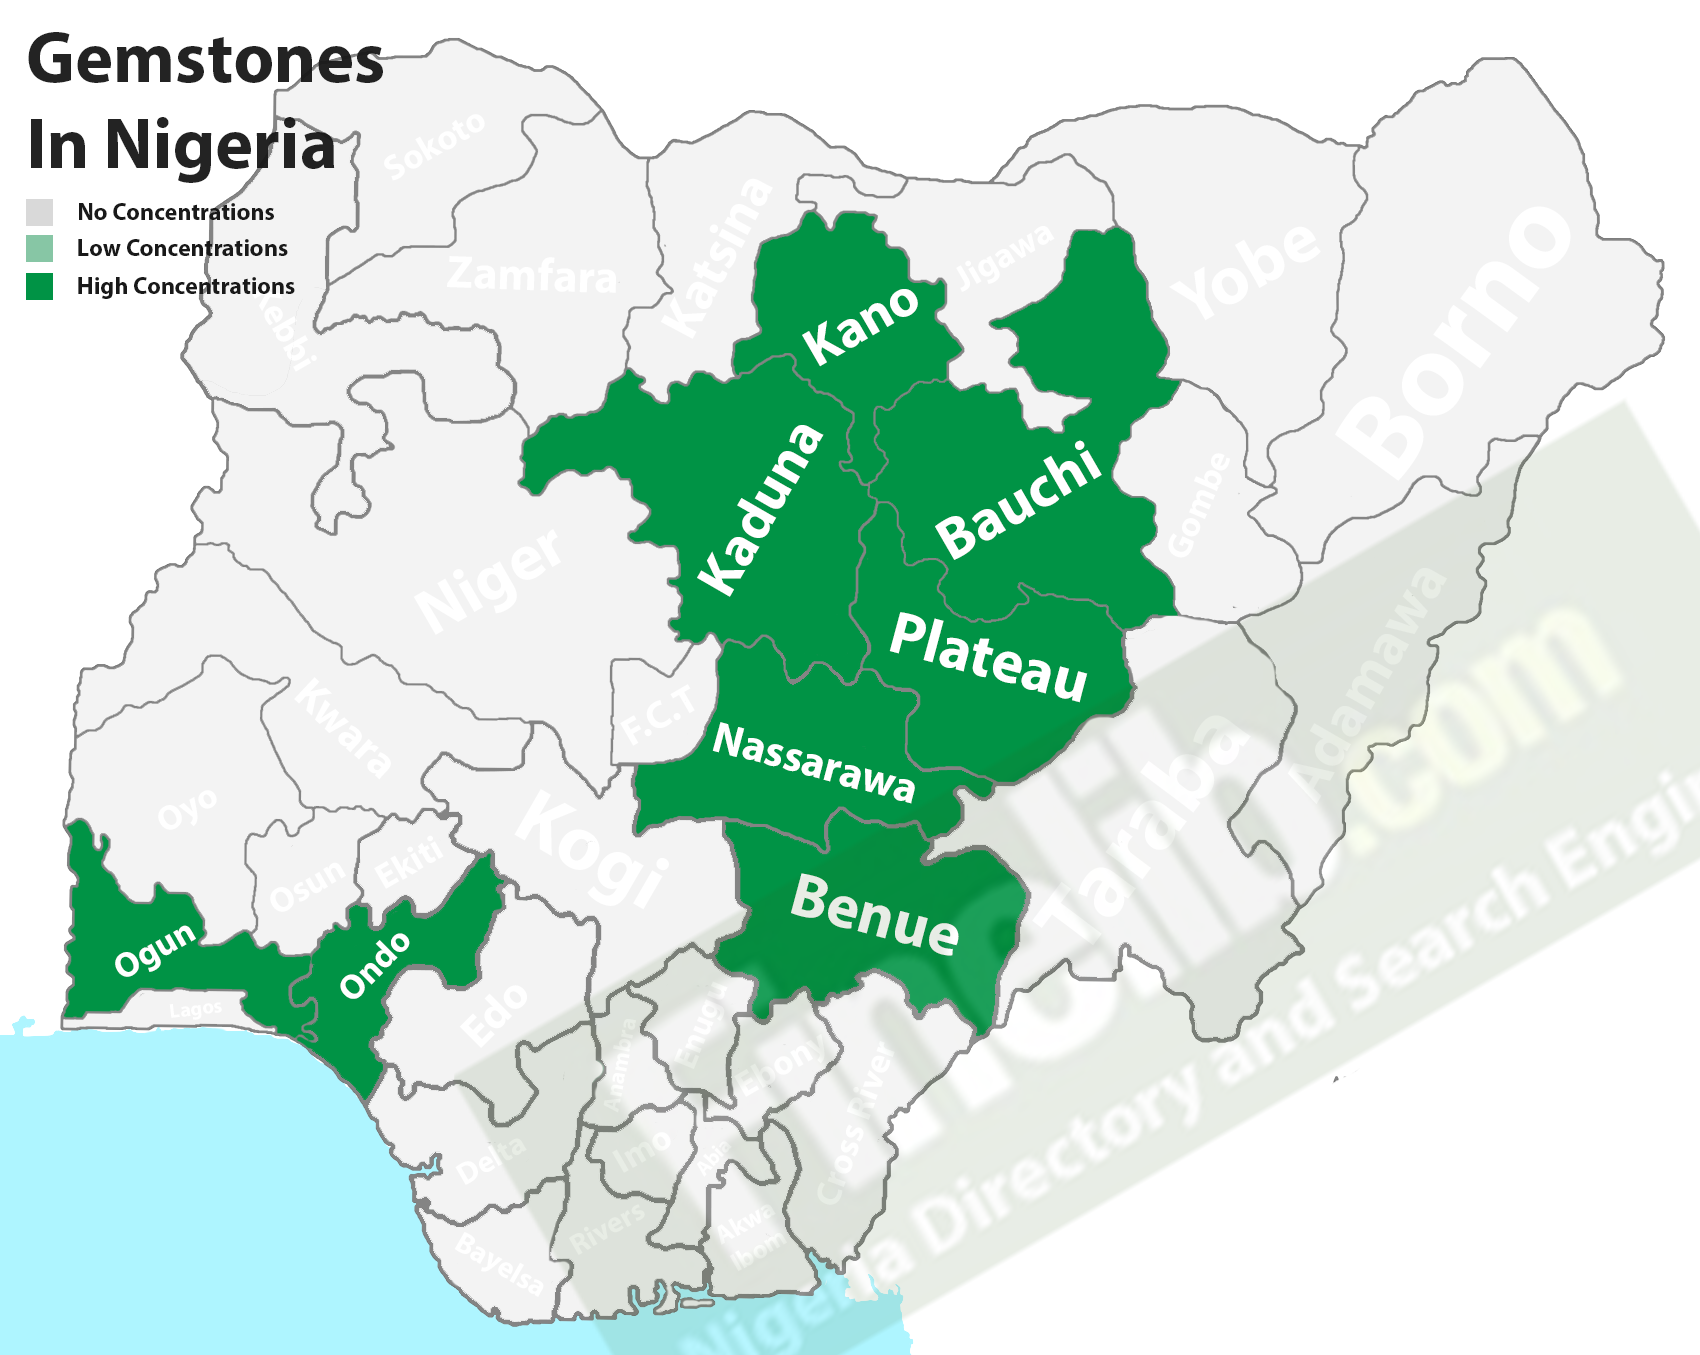 Gemstones deposits in Nigeria